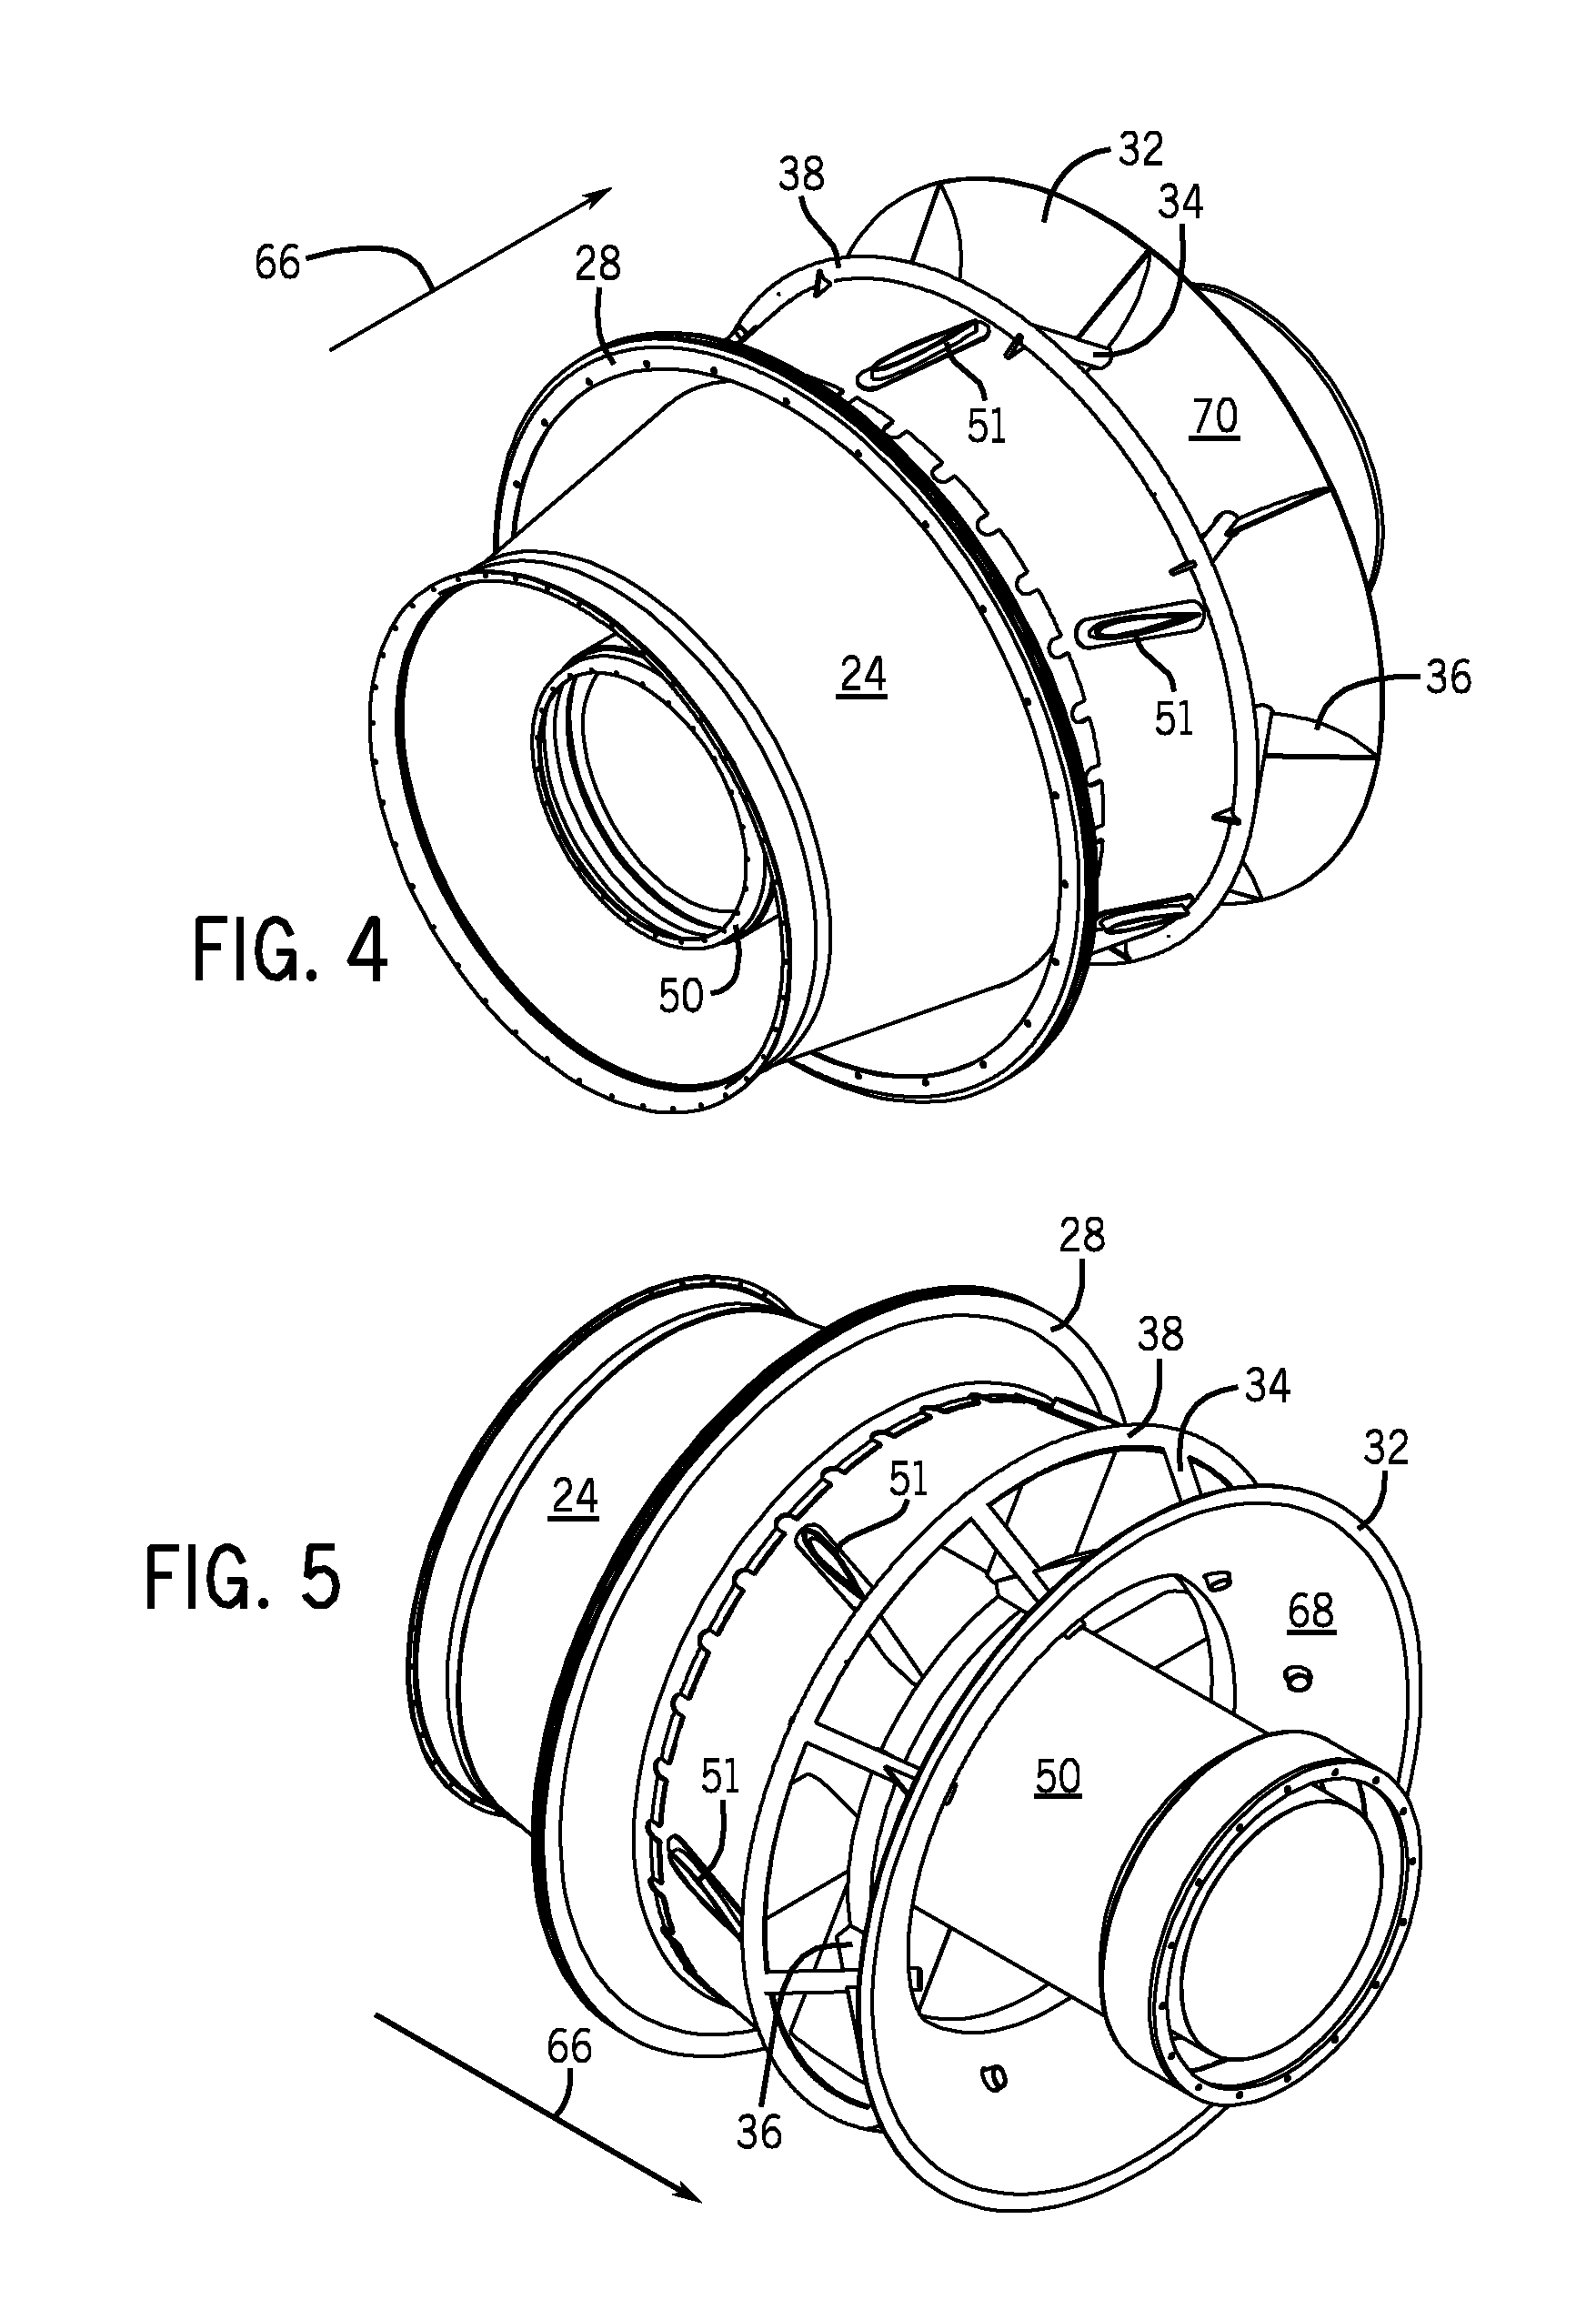 Patent US Gas turbine engine exhaust diffuser and